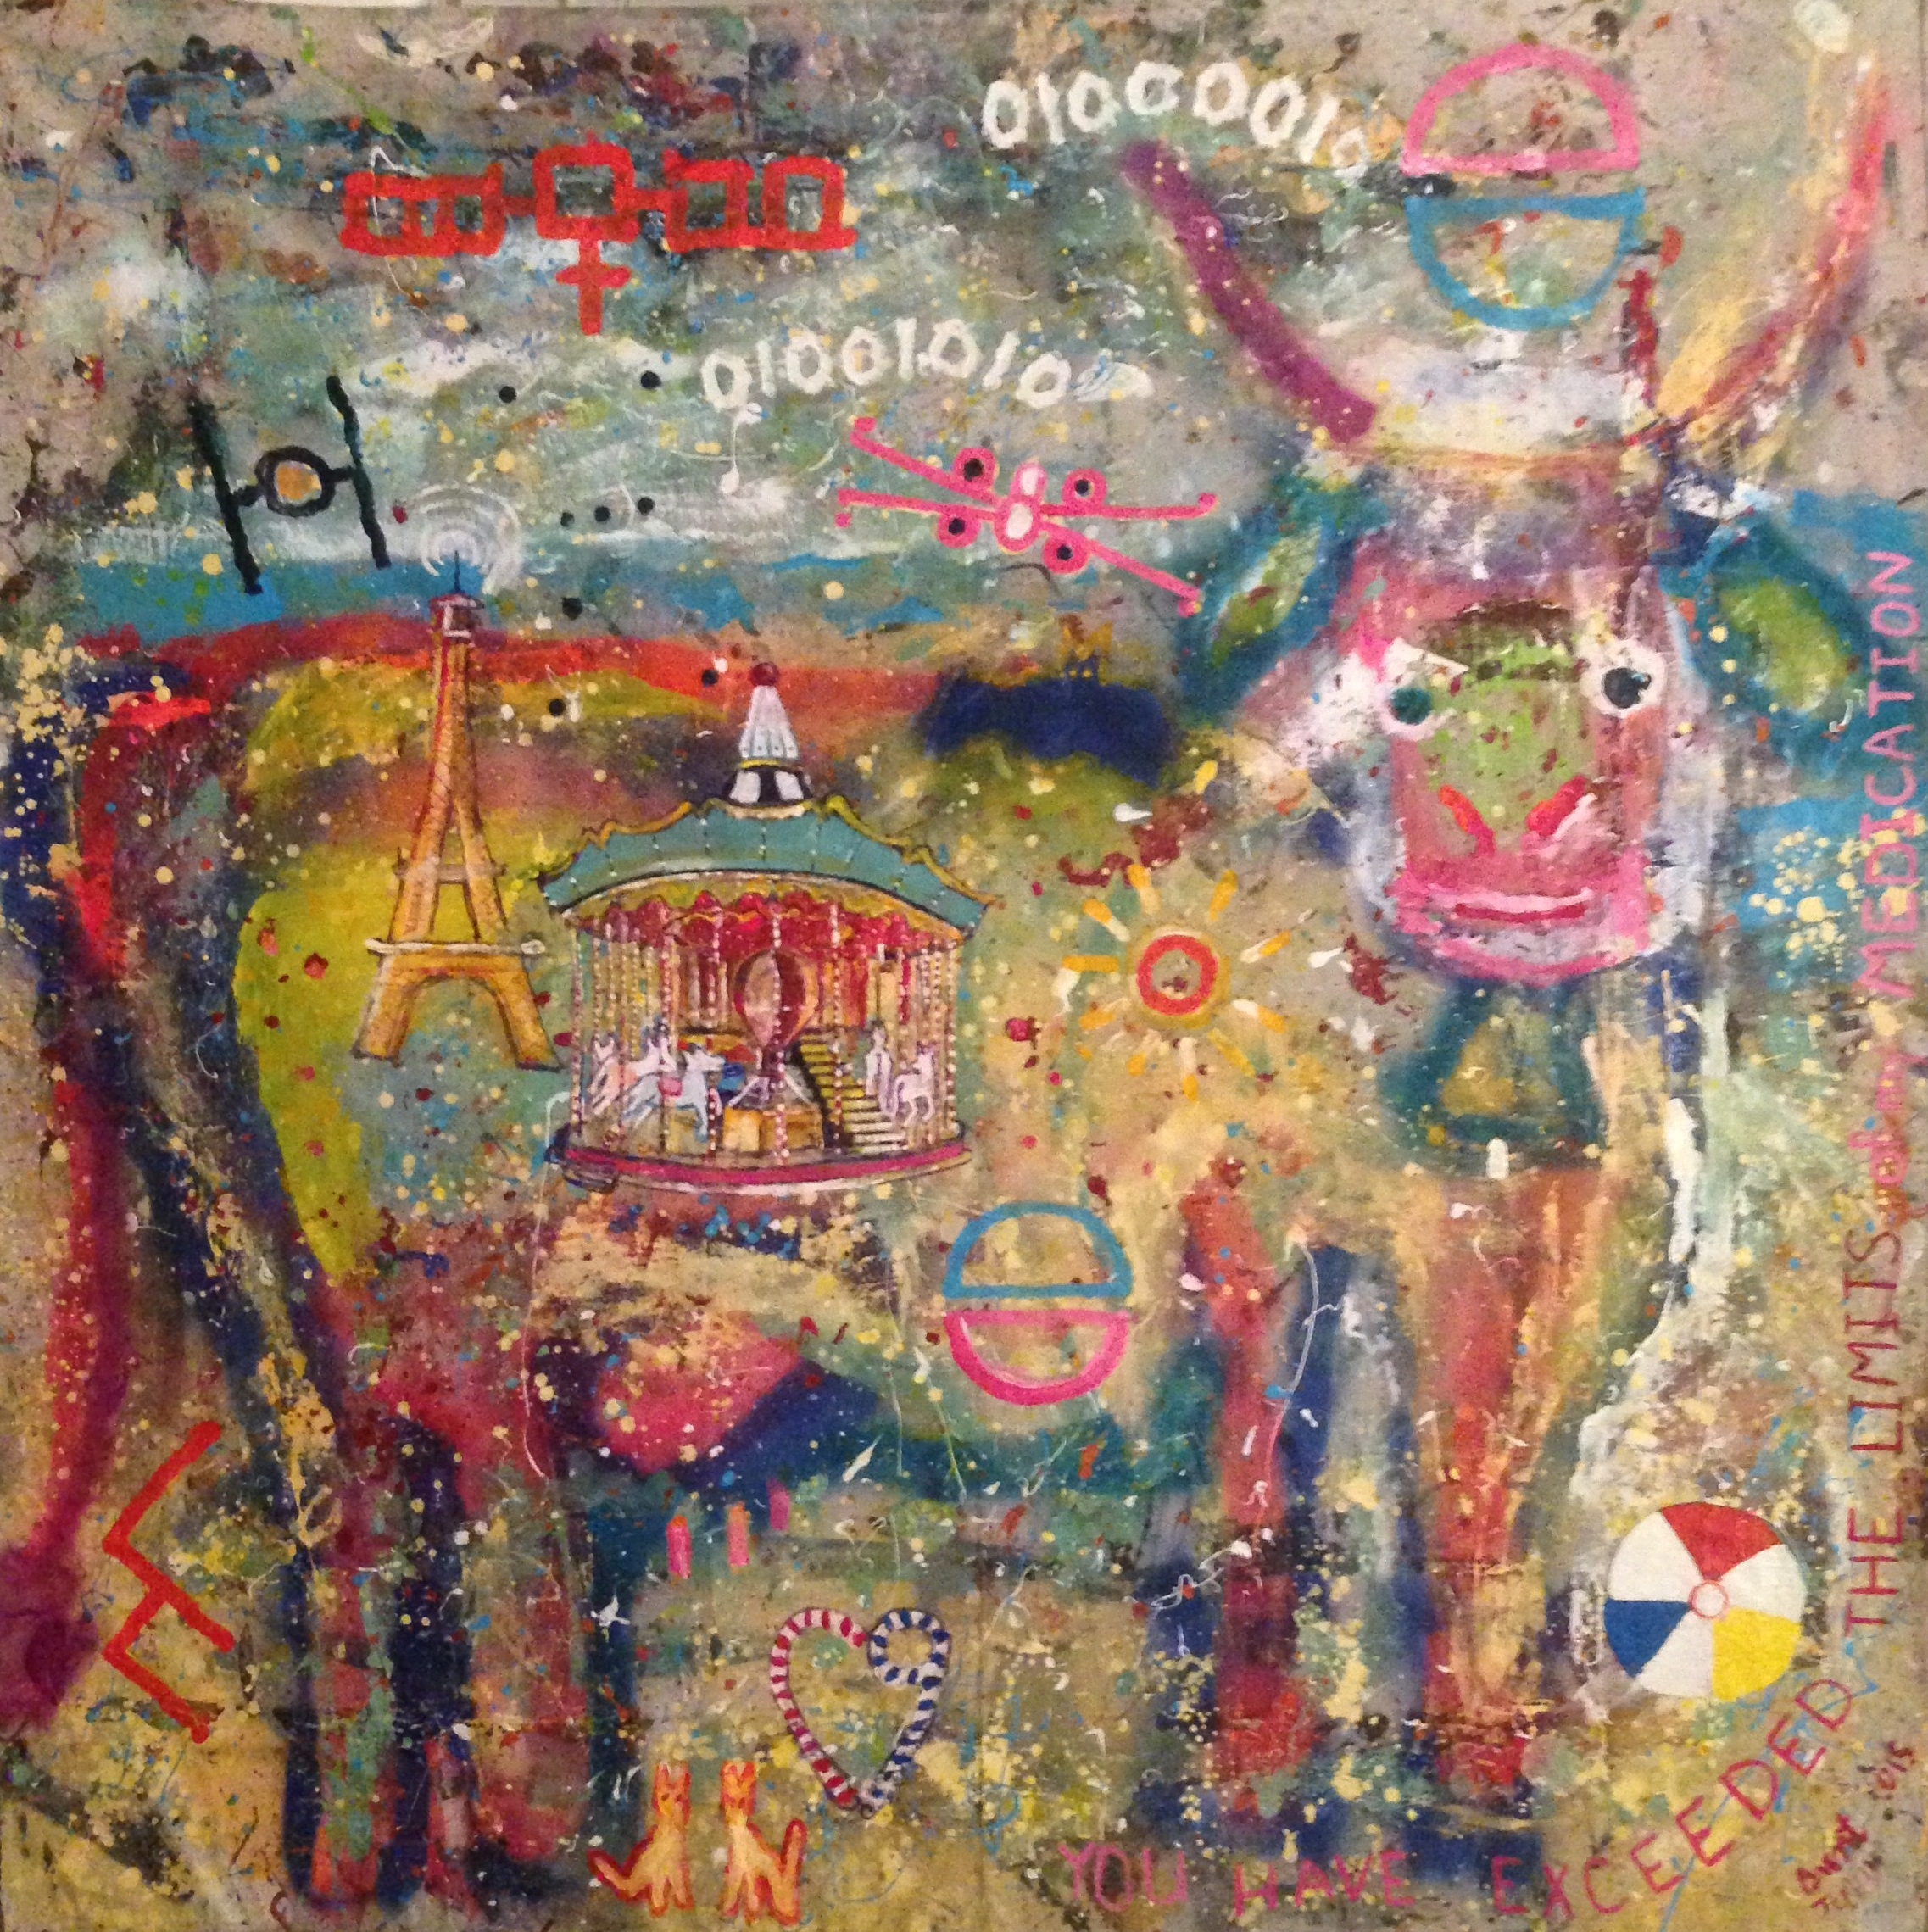 Care Us el Cow artwork by Brent Weston - art listed for sale on Artplode